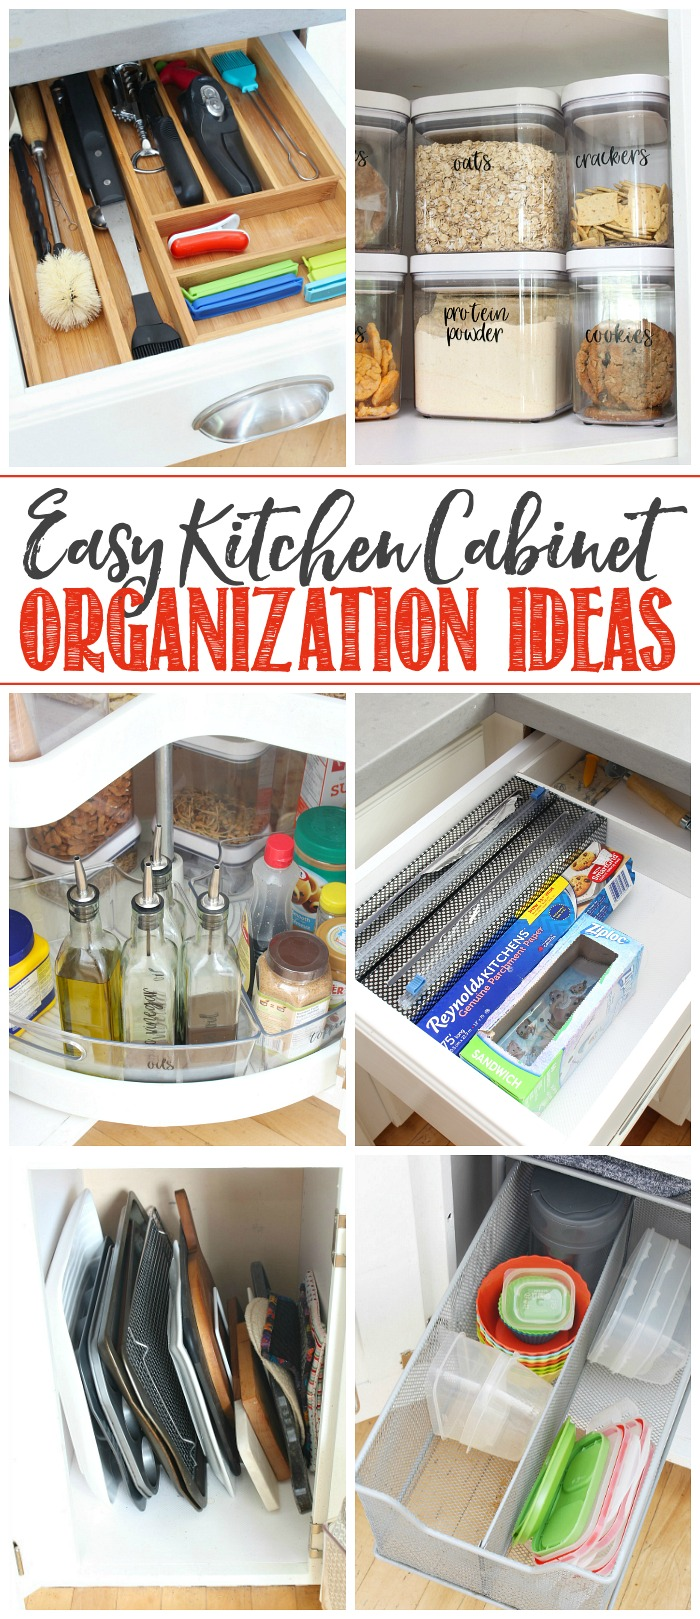 Collage of easy kitchen cabinet organization ideas.